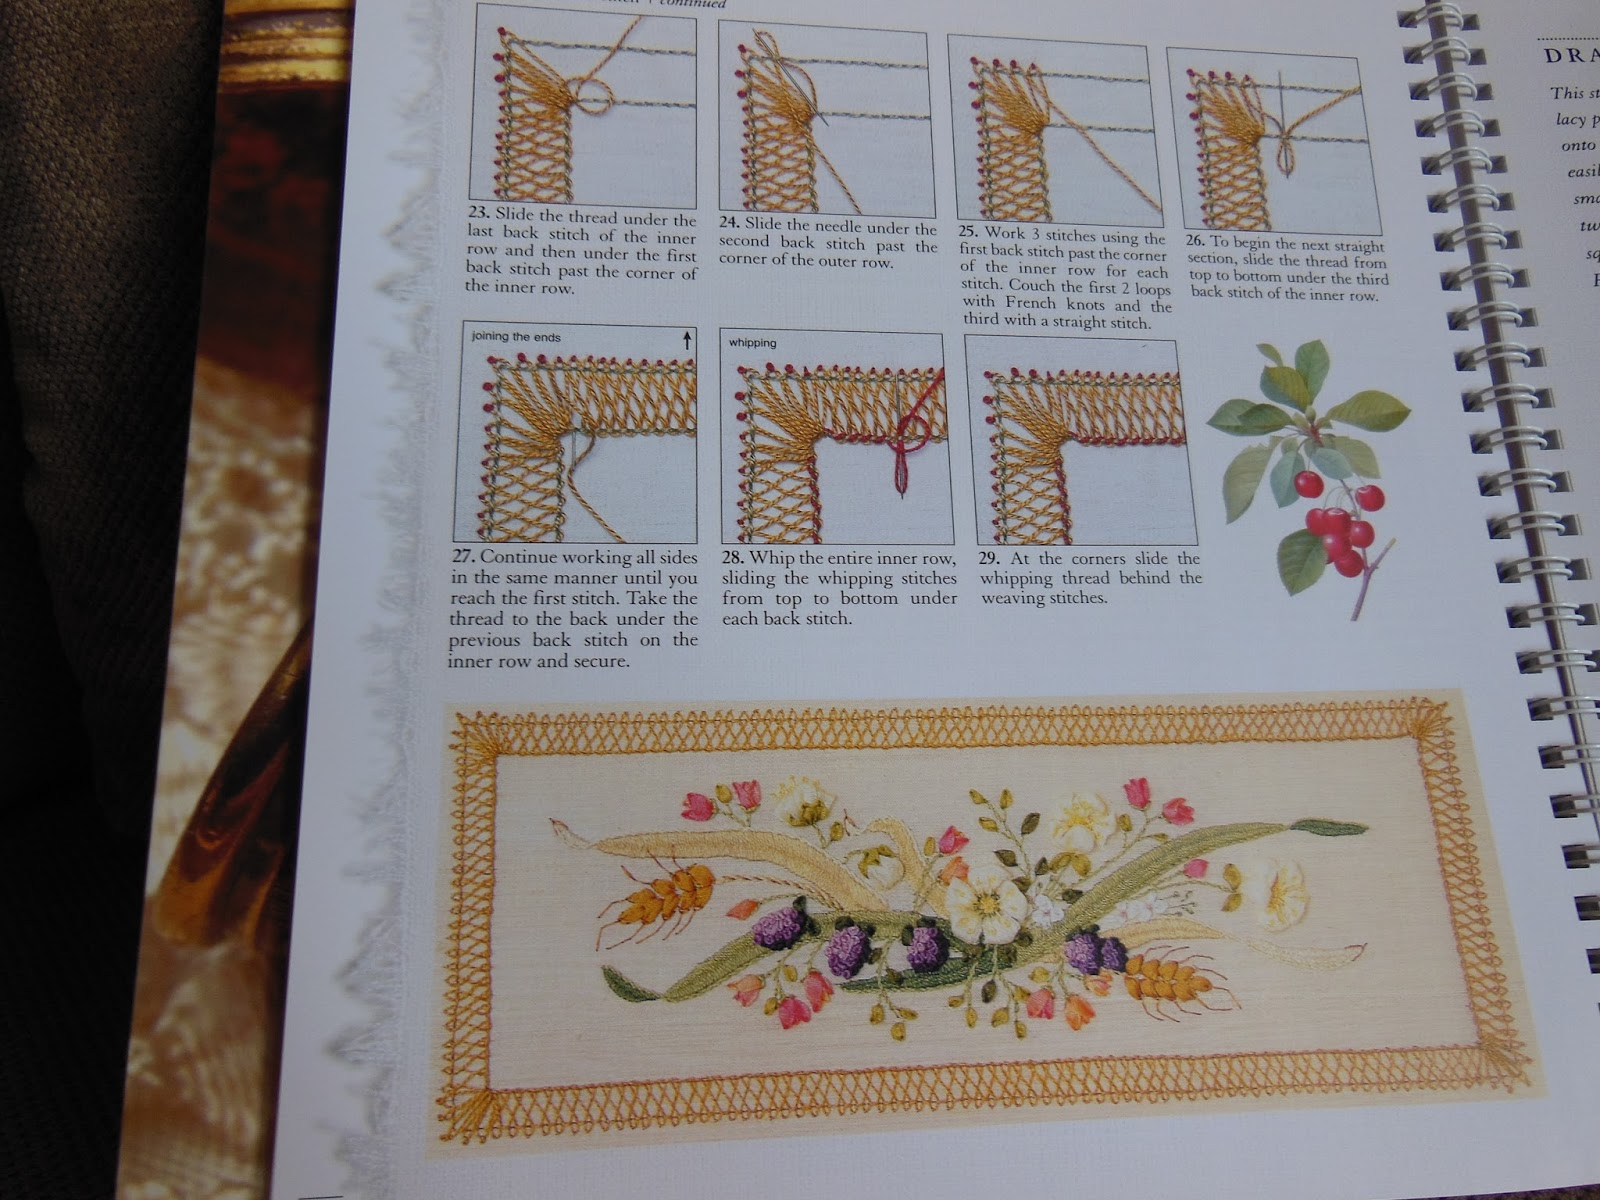 Embroiderelaine book review a z of embroidery stitches